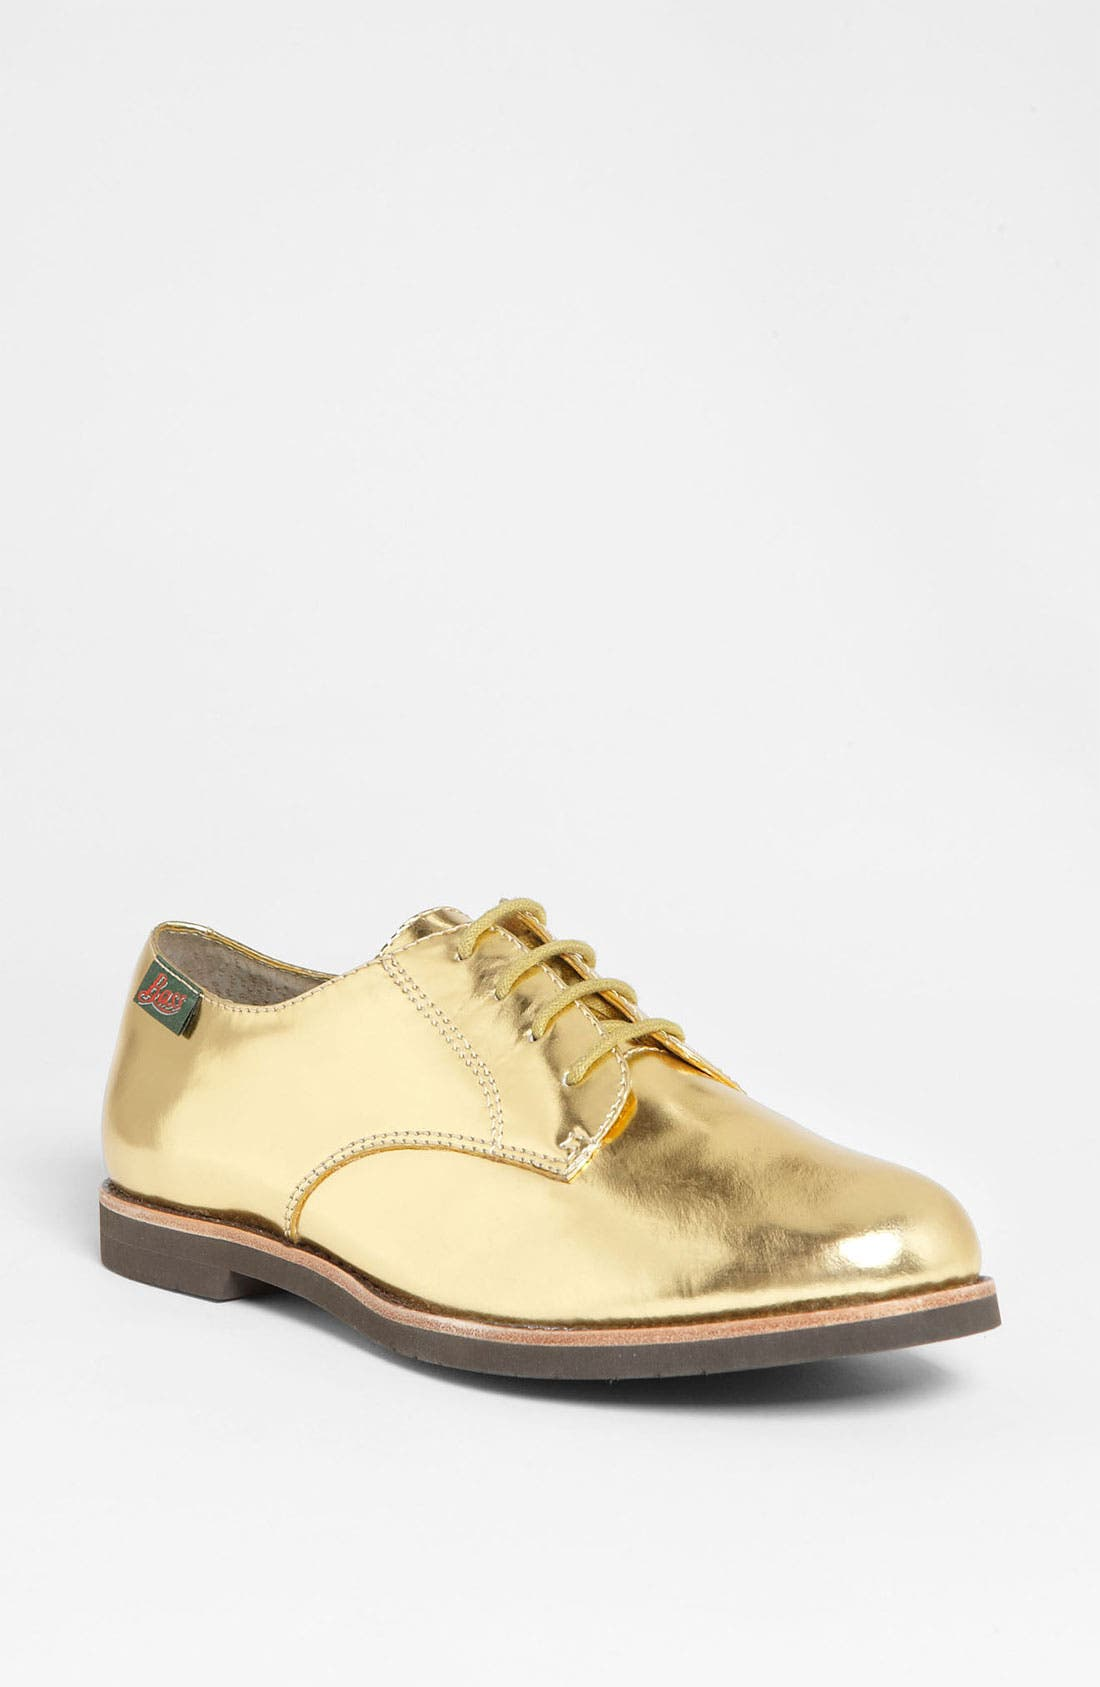 Alternate Image 1 Selected - G.H. Bass & Co. 'Ely 3' Lace-Up Oxford